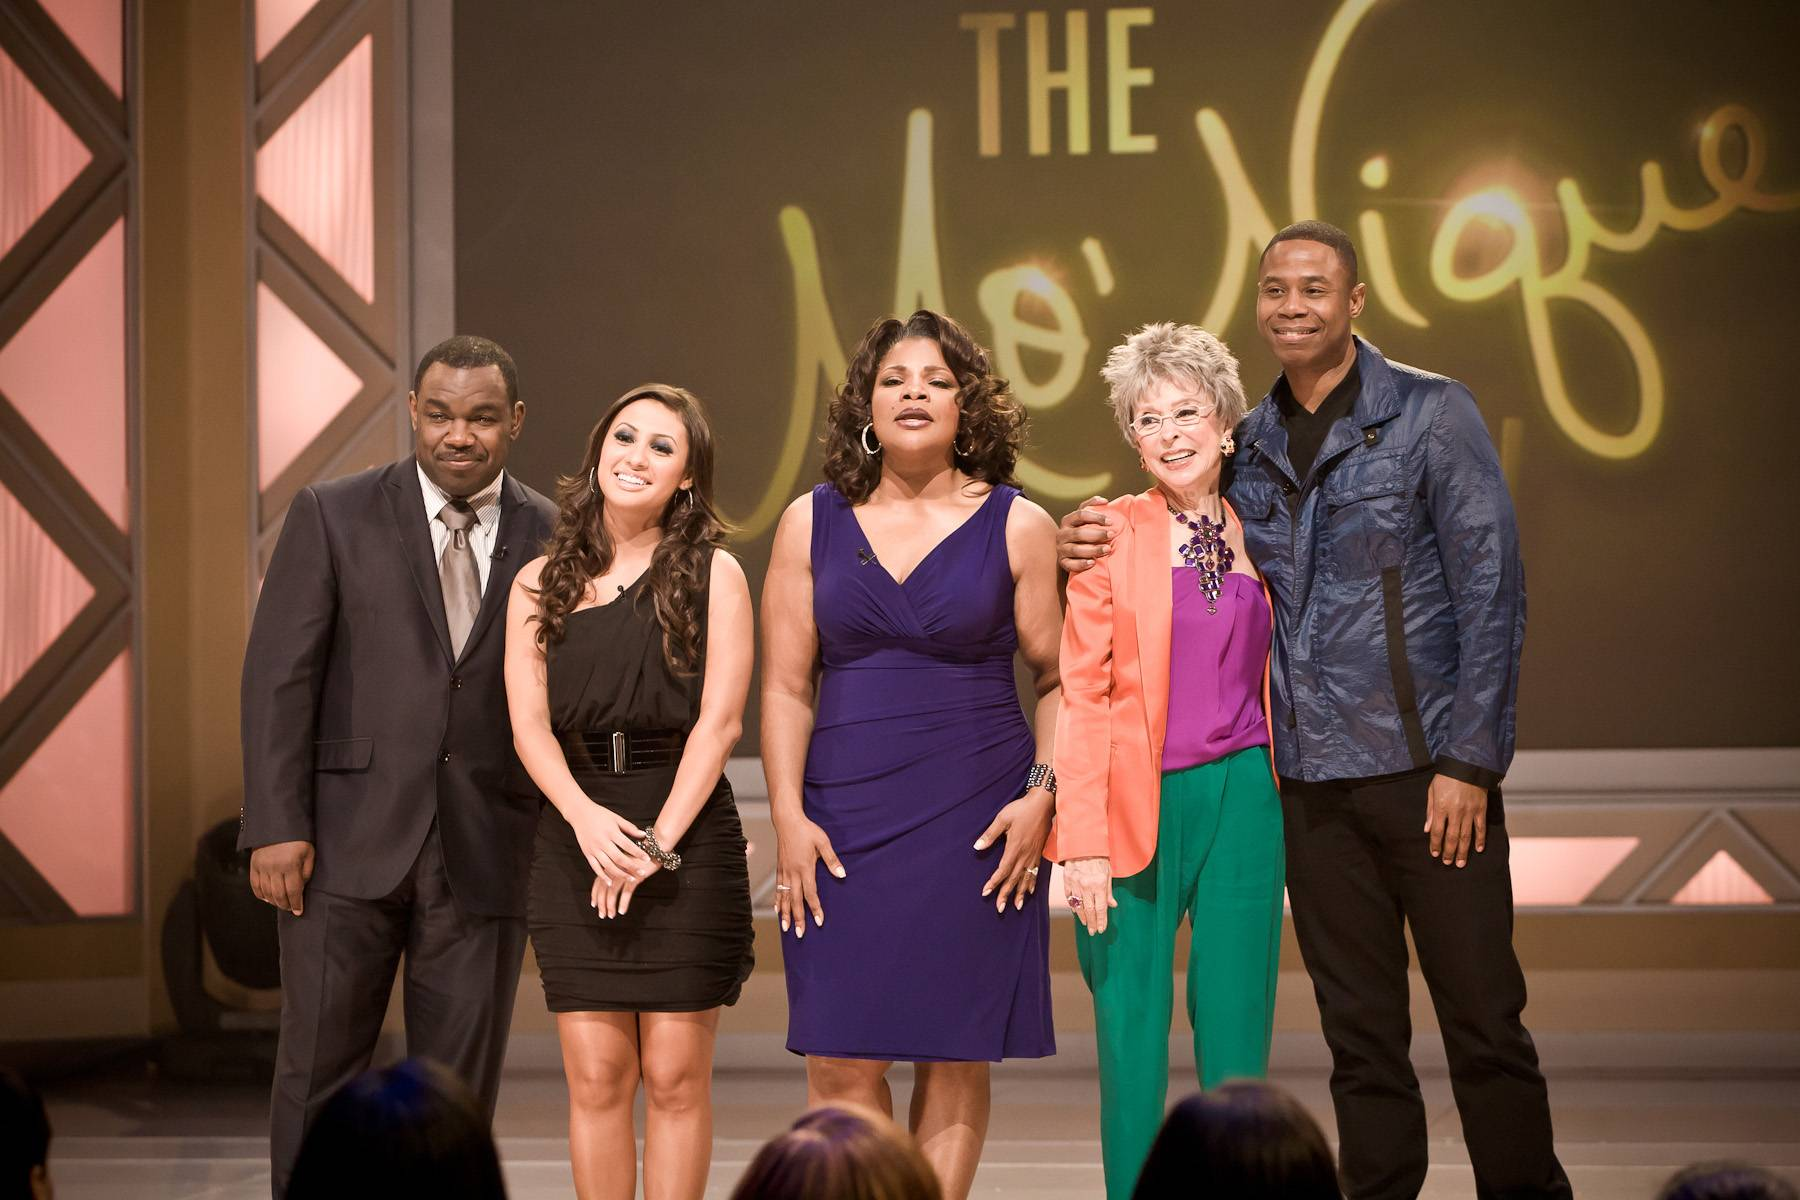 Farewell to Another Great Episode! - From left: Rodney Perry, Francis Raisa, Mo'Nique, Rita Moreno and Doug E. Fresh.(Photo: Darnell Williams/BET)